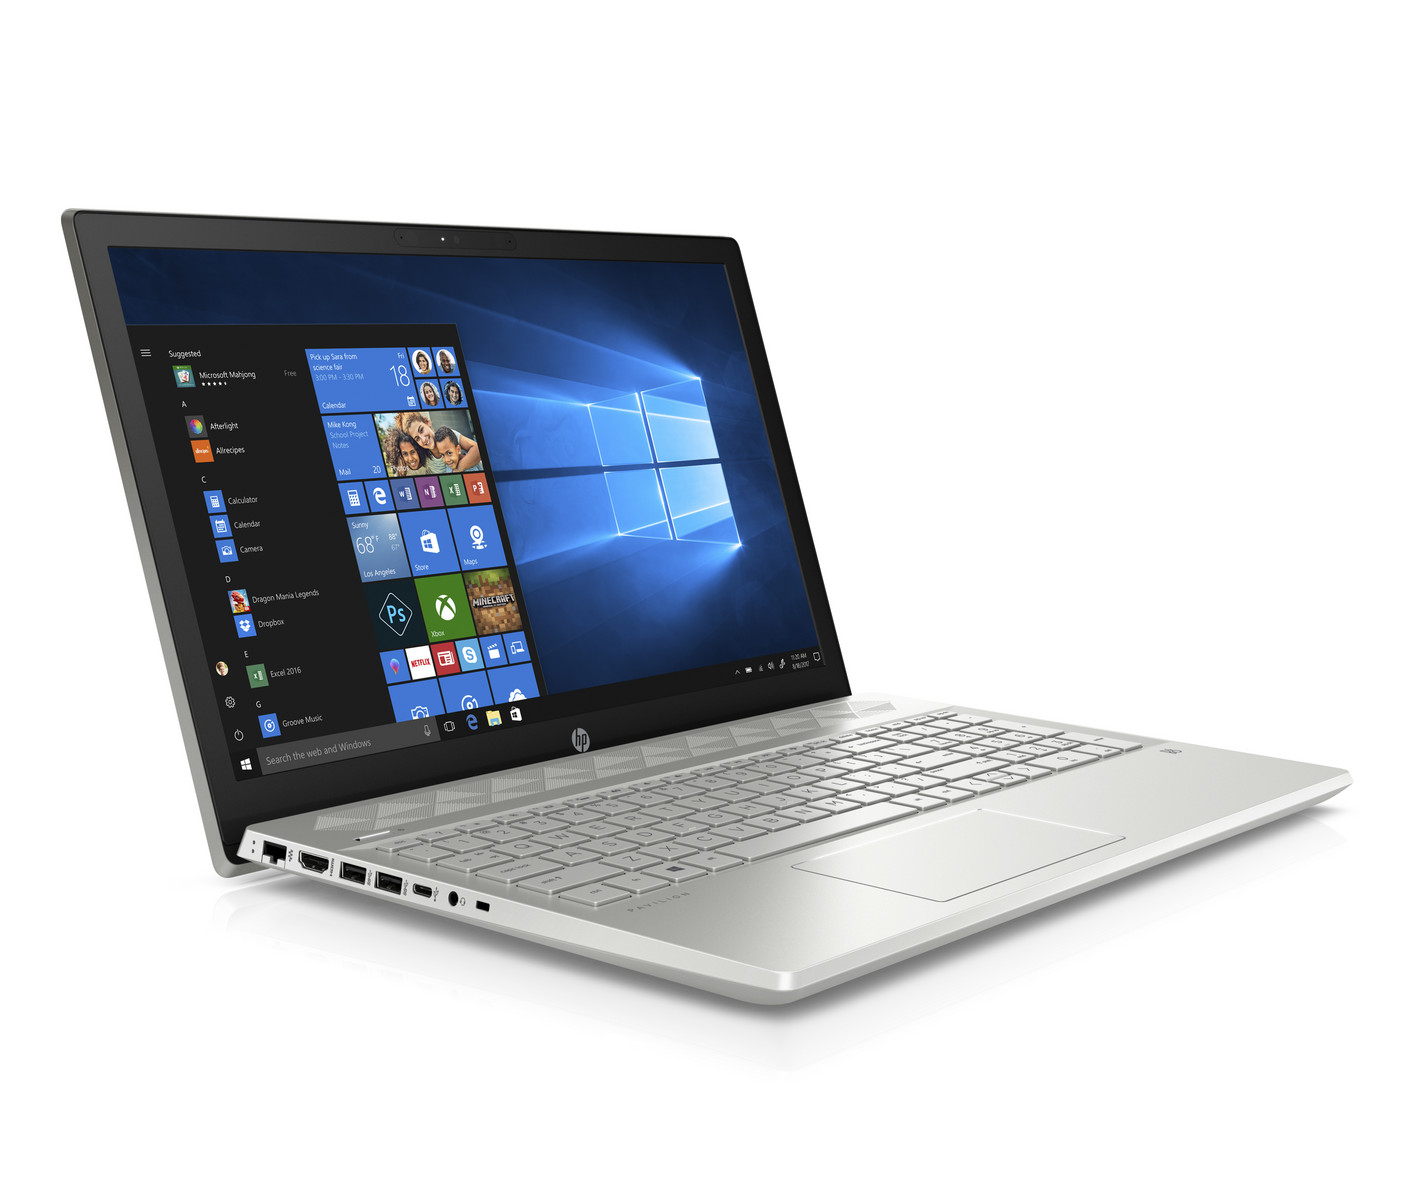 Hp pavilion x360 intel core i3 8th gen 14-inch touchscreen 2-in-1 fhd thin and light laptop